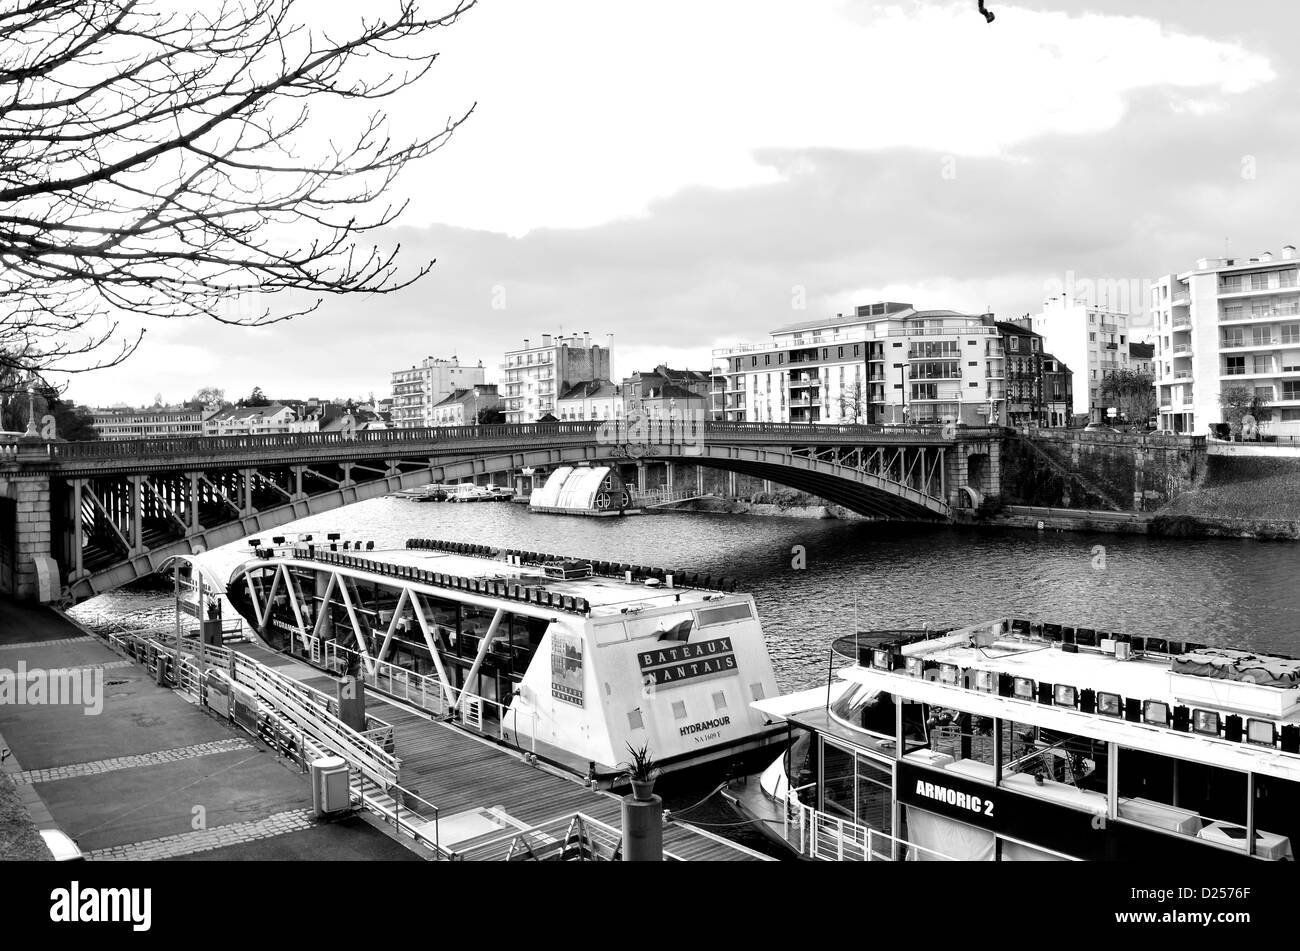 The localy famous bridge 'Motte Rouge' in Nantes, France. - Stock Image